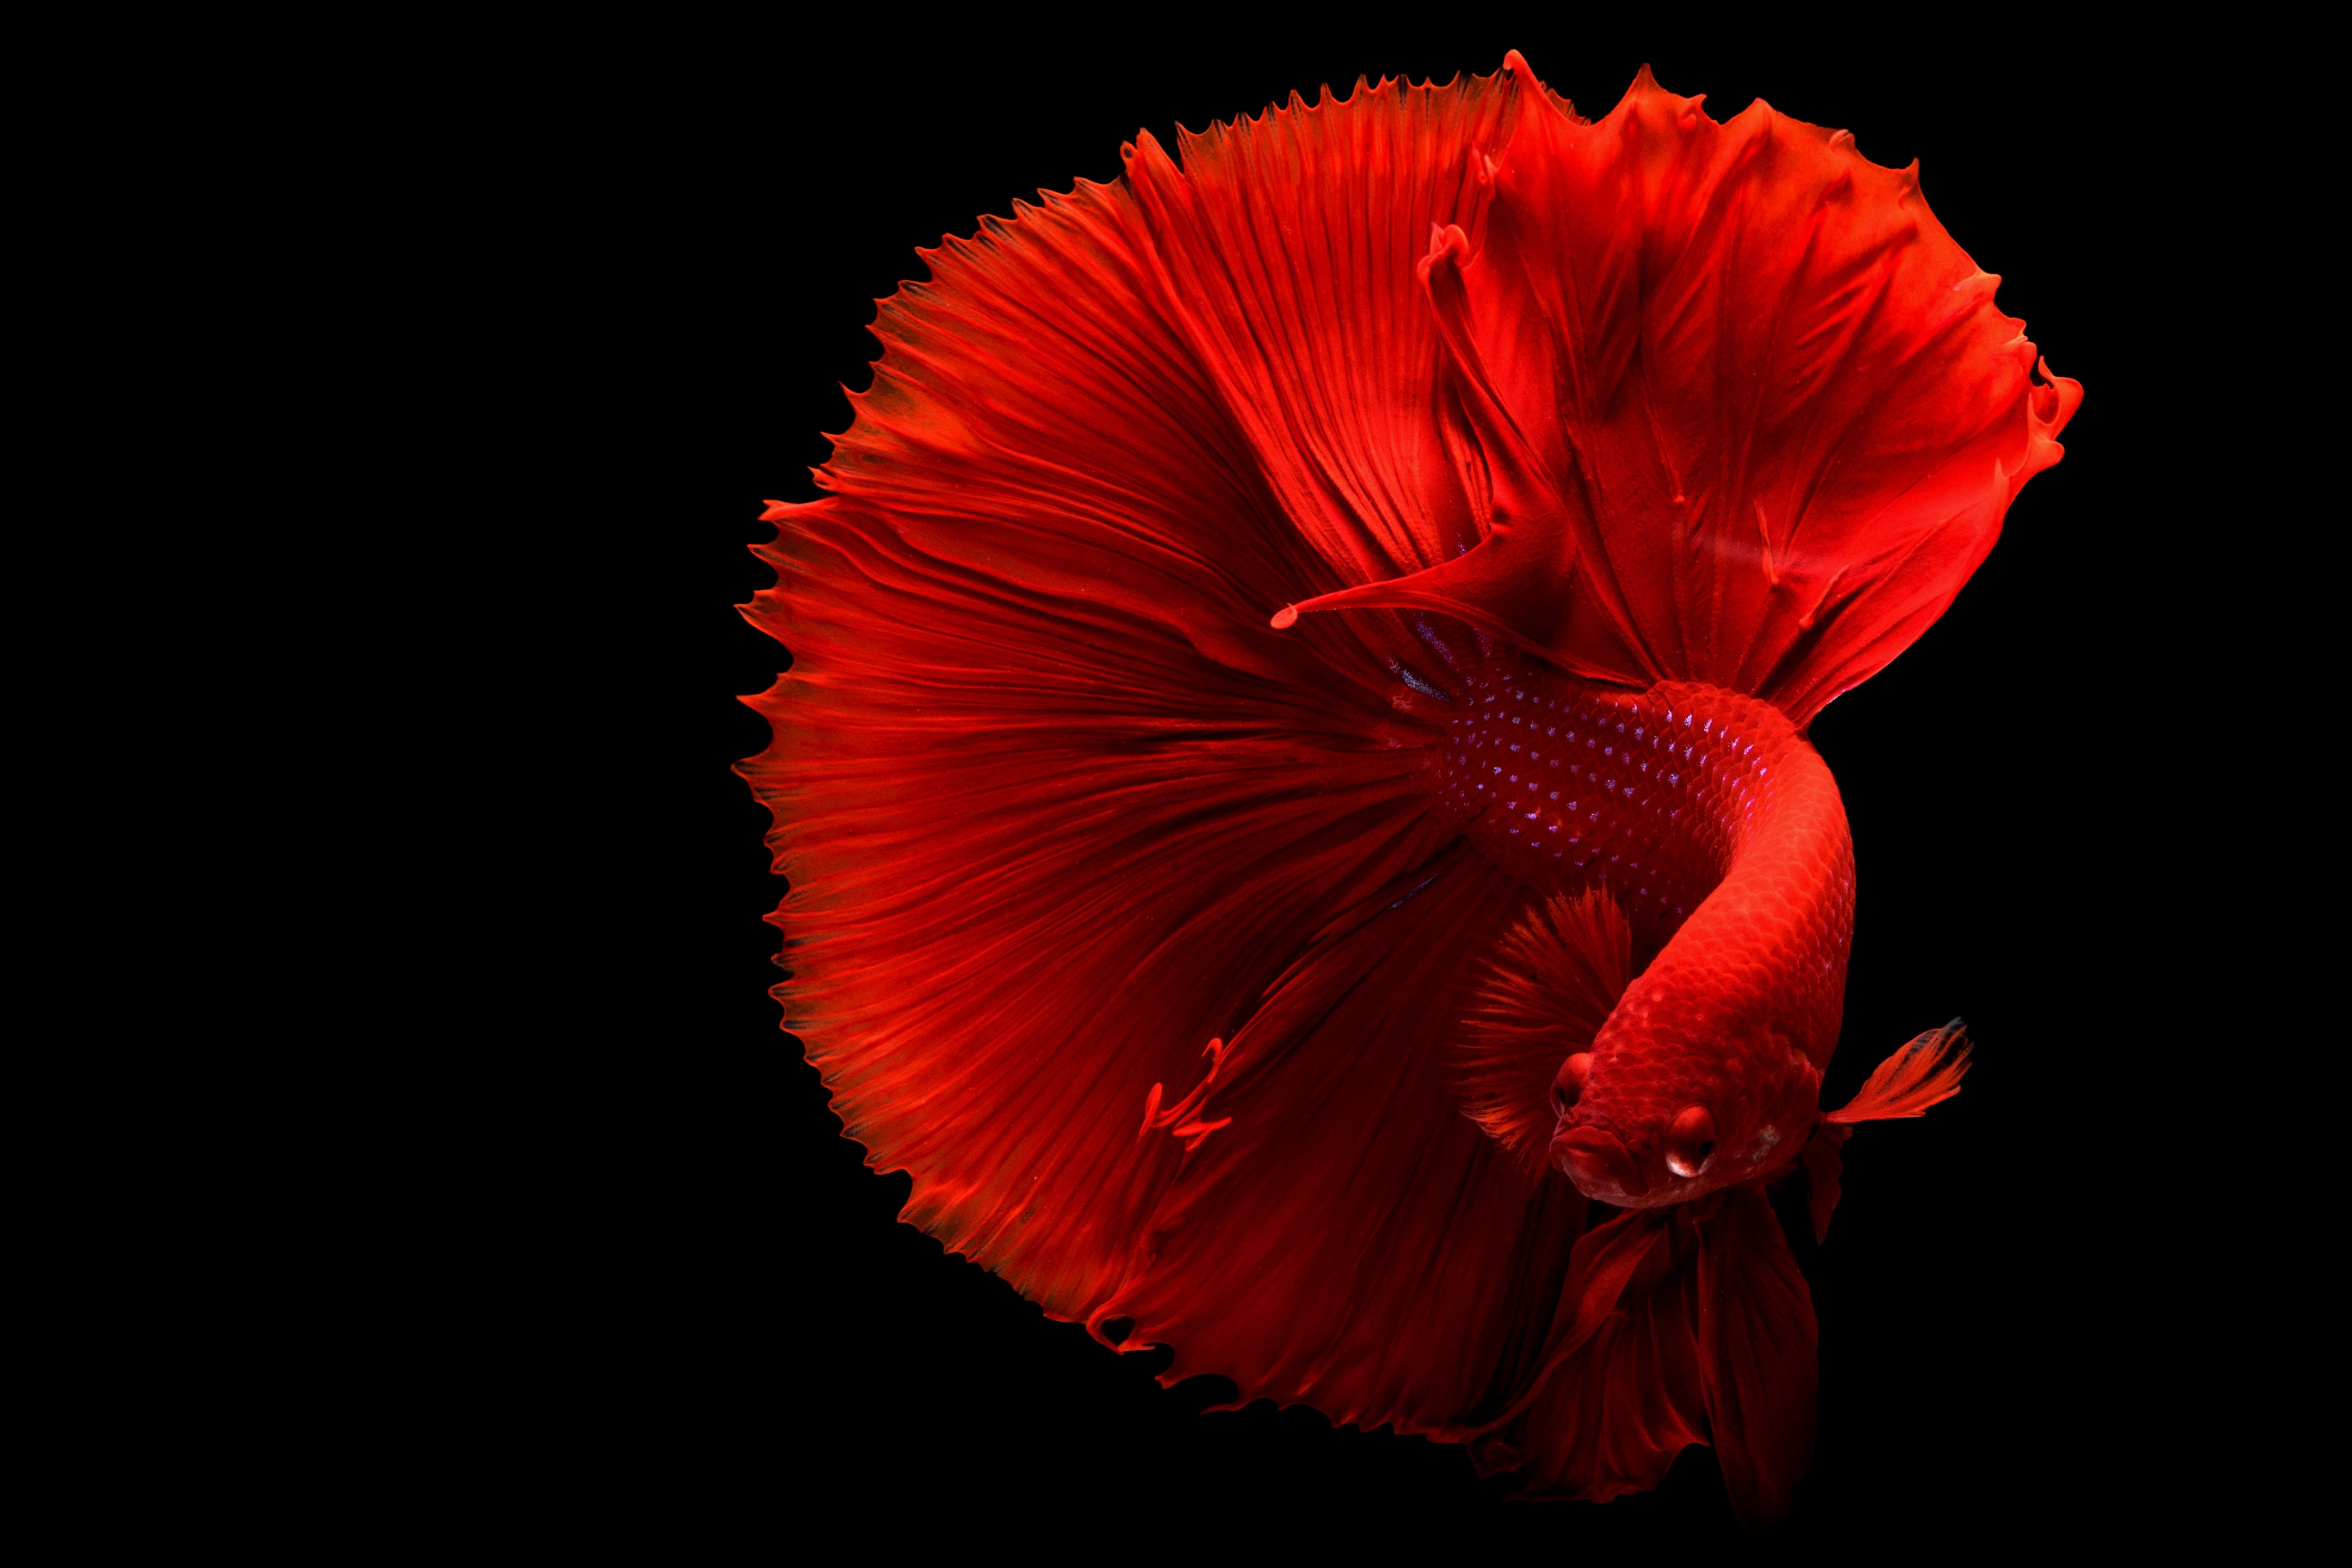 animal-betta-desktop-backgrounds-1335971